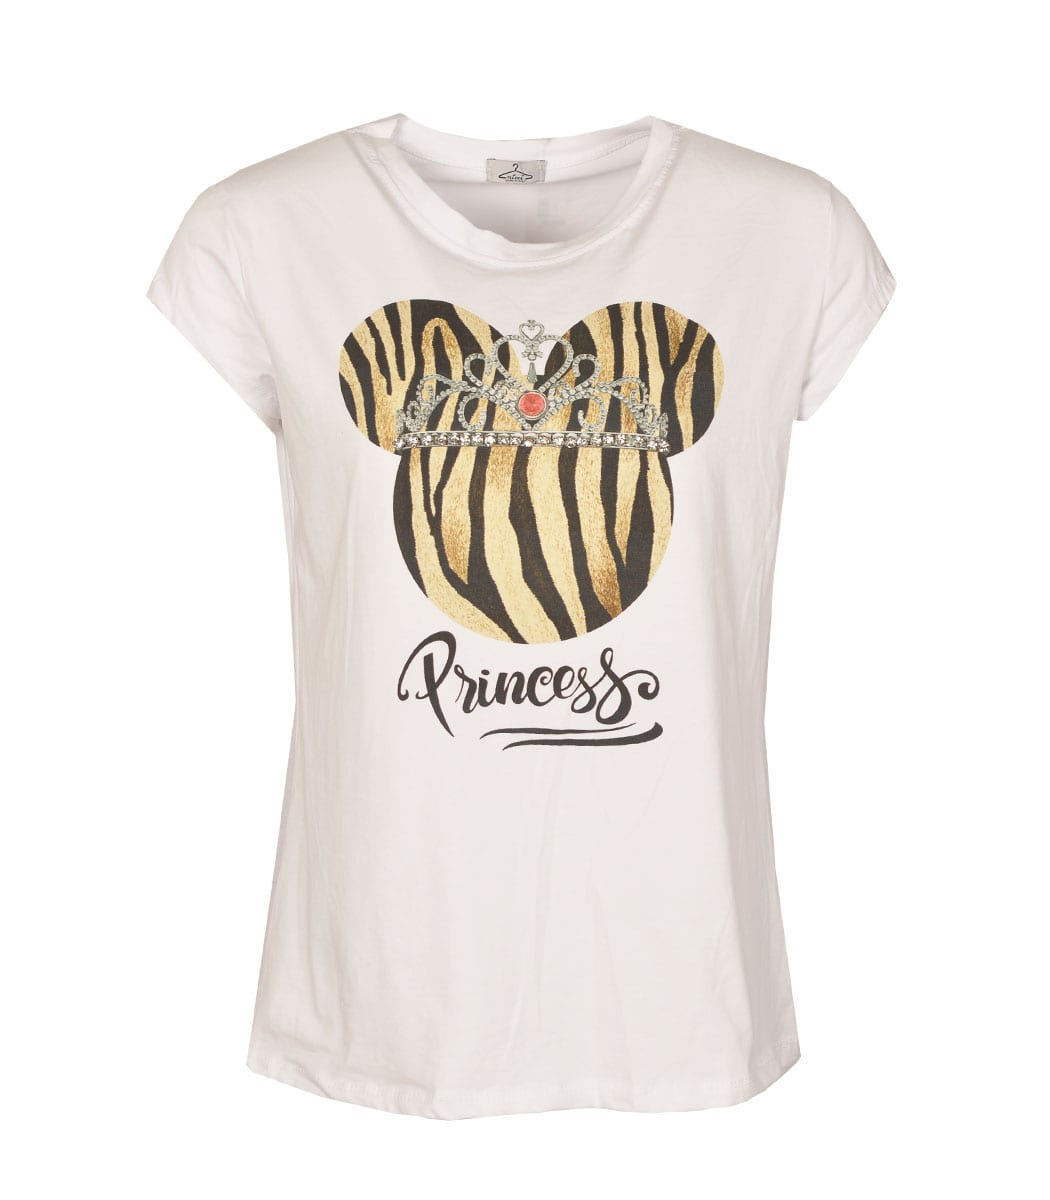 Princess print top